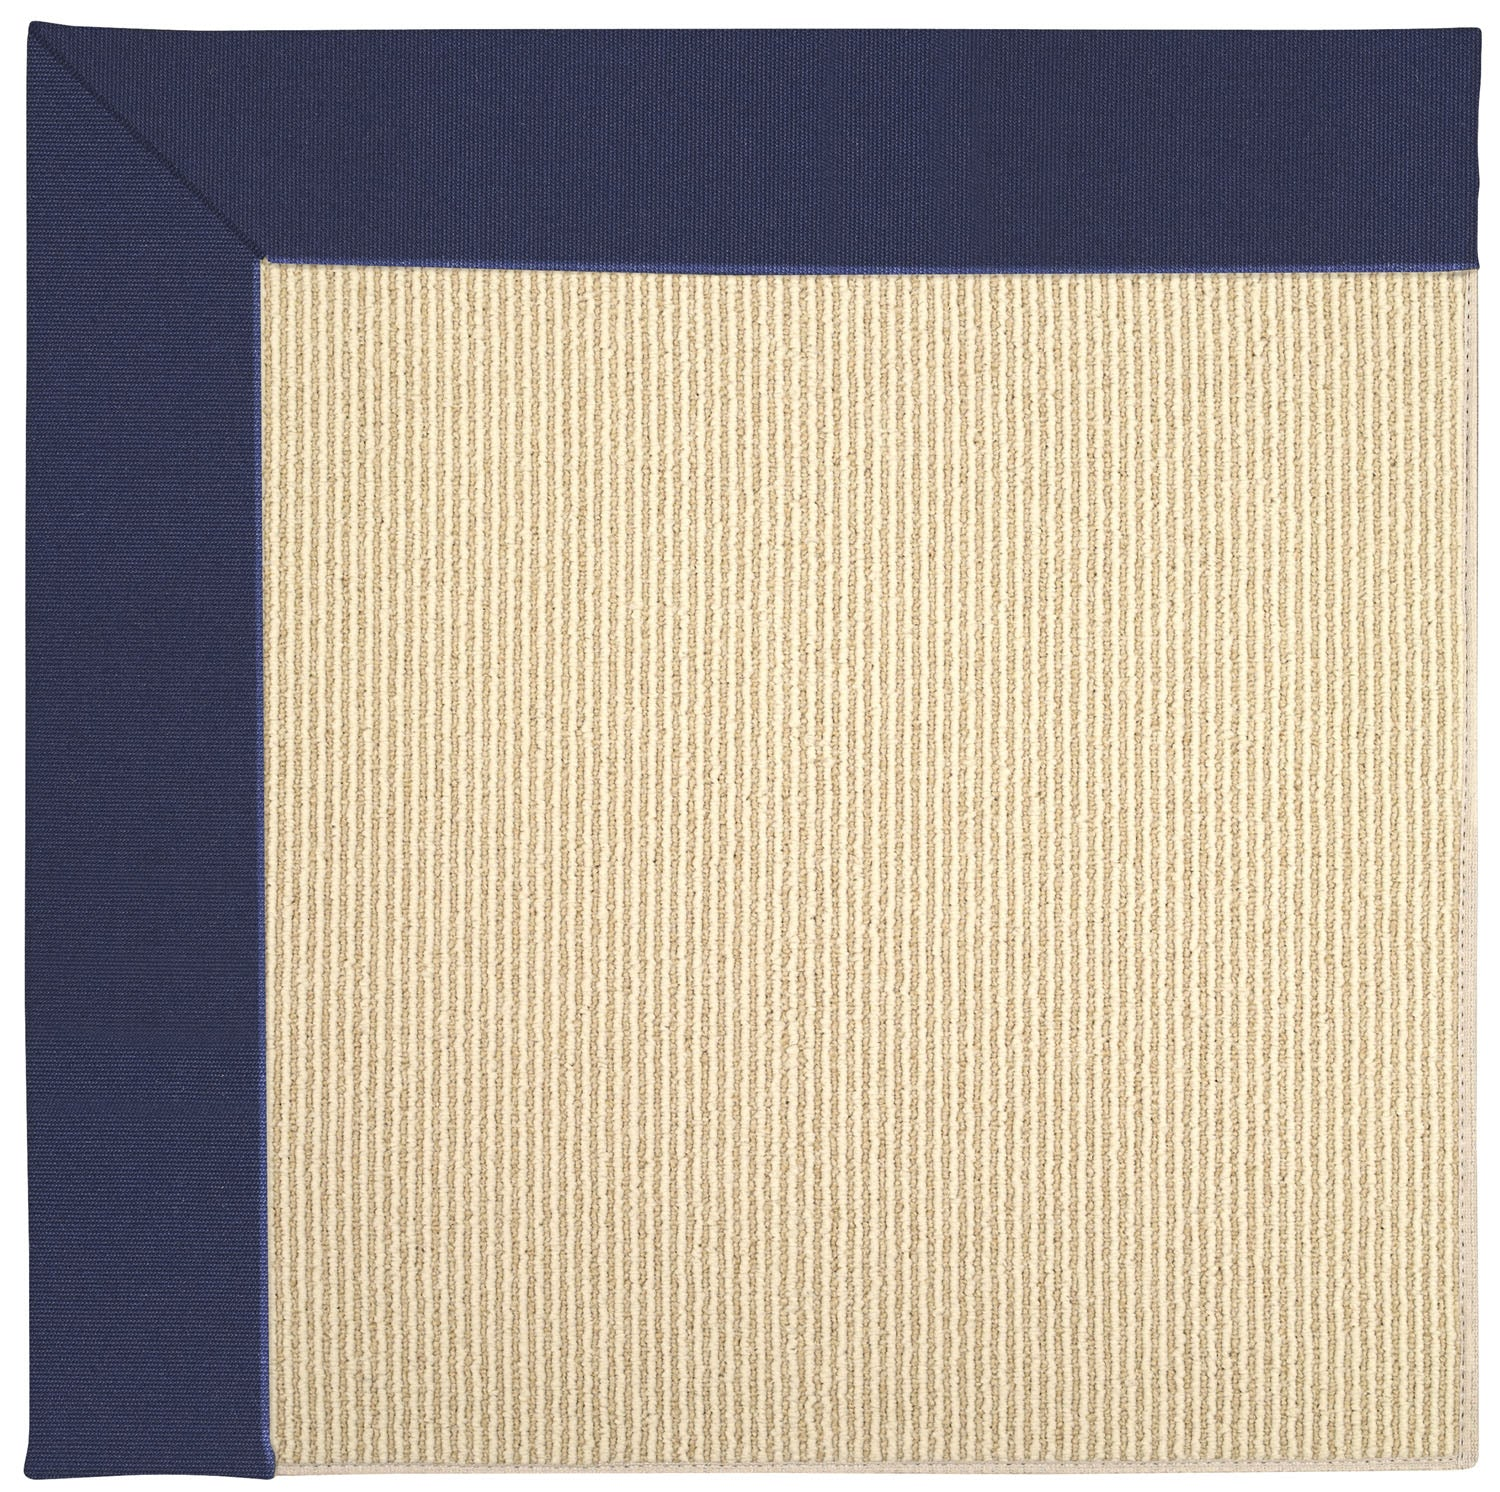 Capel Zoe-Beach Sisal 2009 Navy Area Rug main image